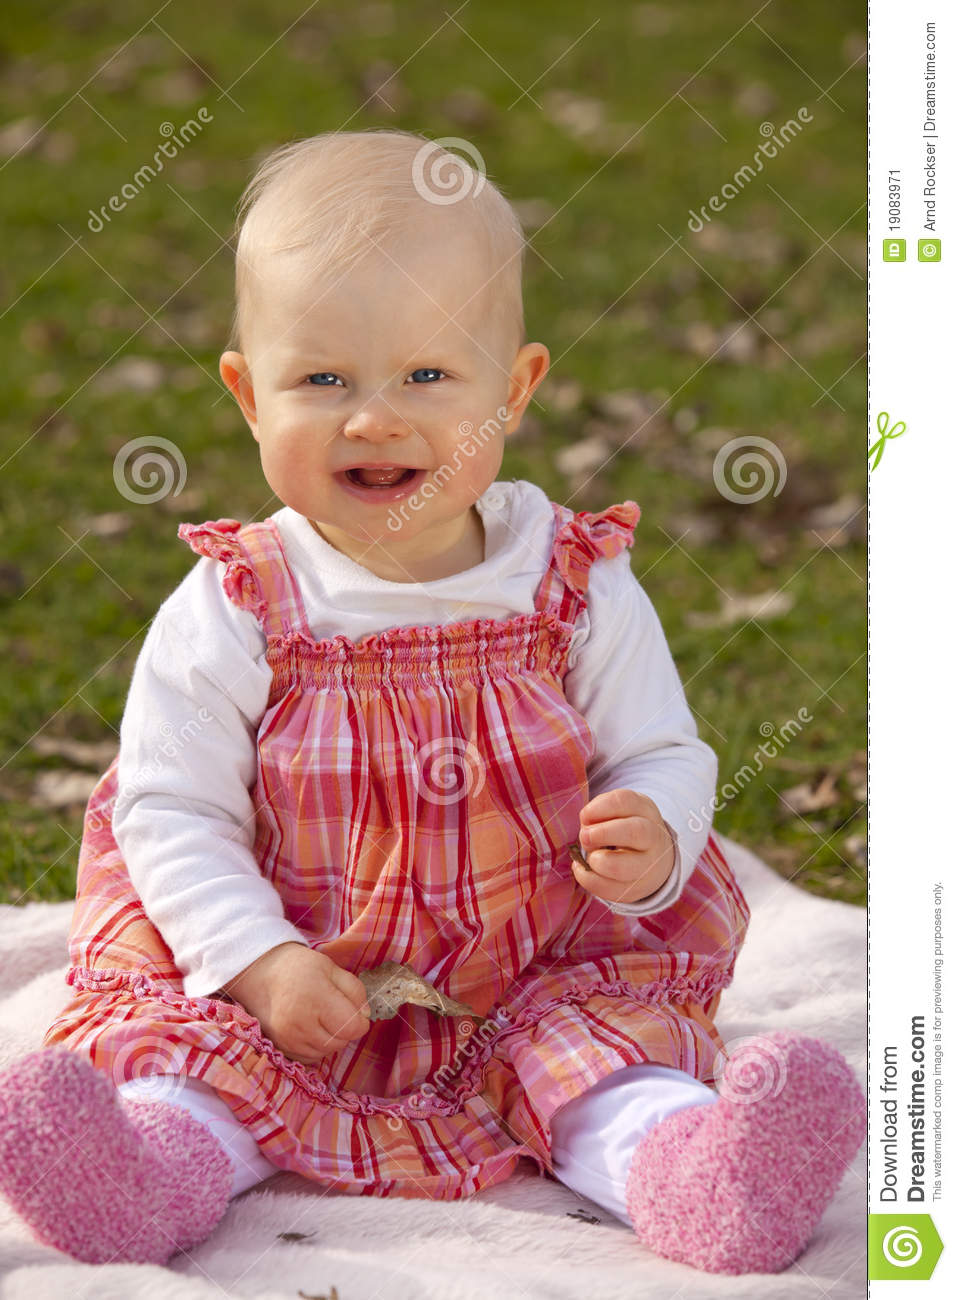 Laughing Baby Girl Stock Image - Image: 19083971